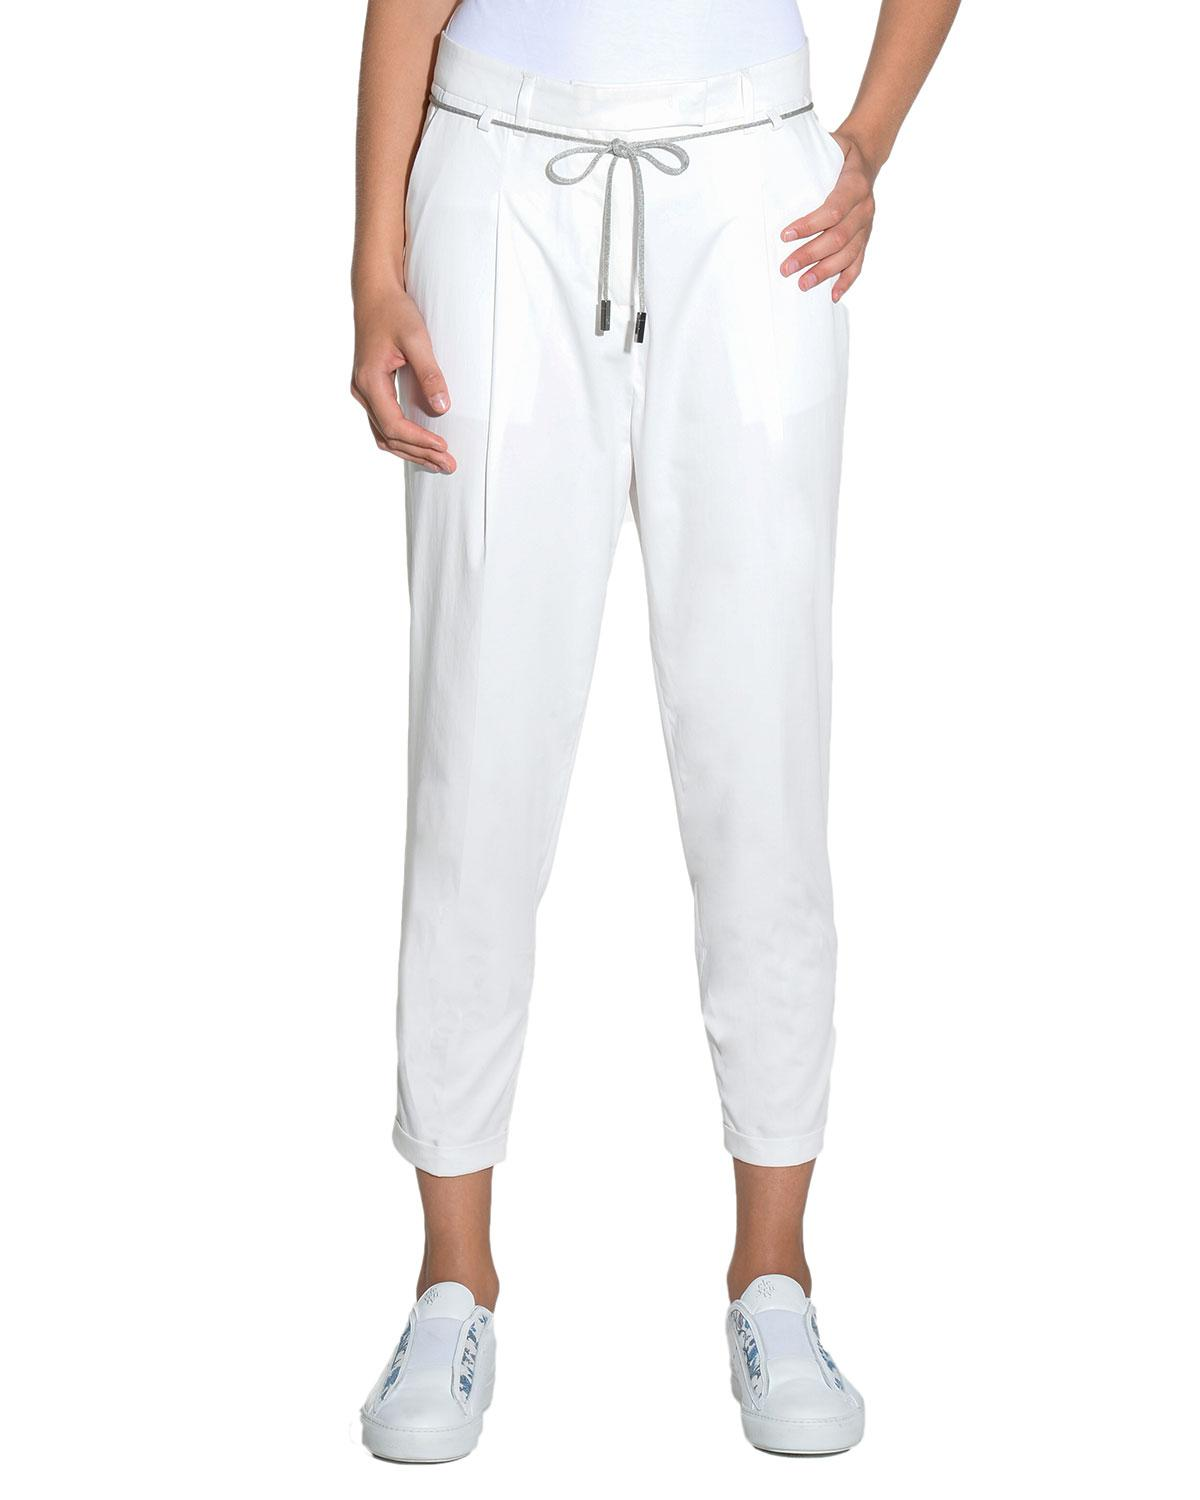 cropped trousers - White Eleventy Manchester Great Sale Online Release Dates For Sale Buy Cheap Sale Cheap Sale Sale Outlet With Paypal Order Online JSN7h